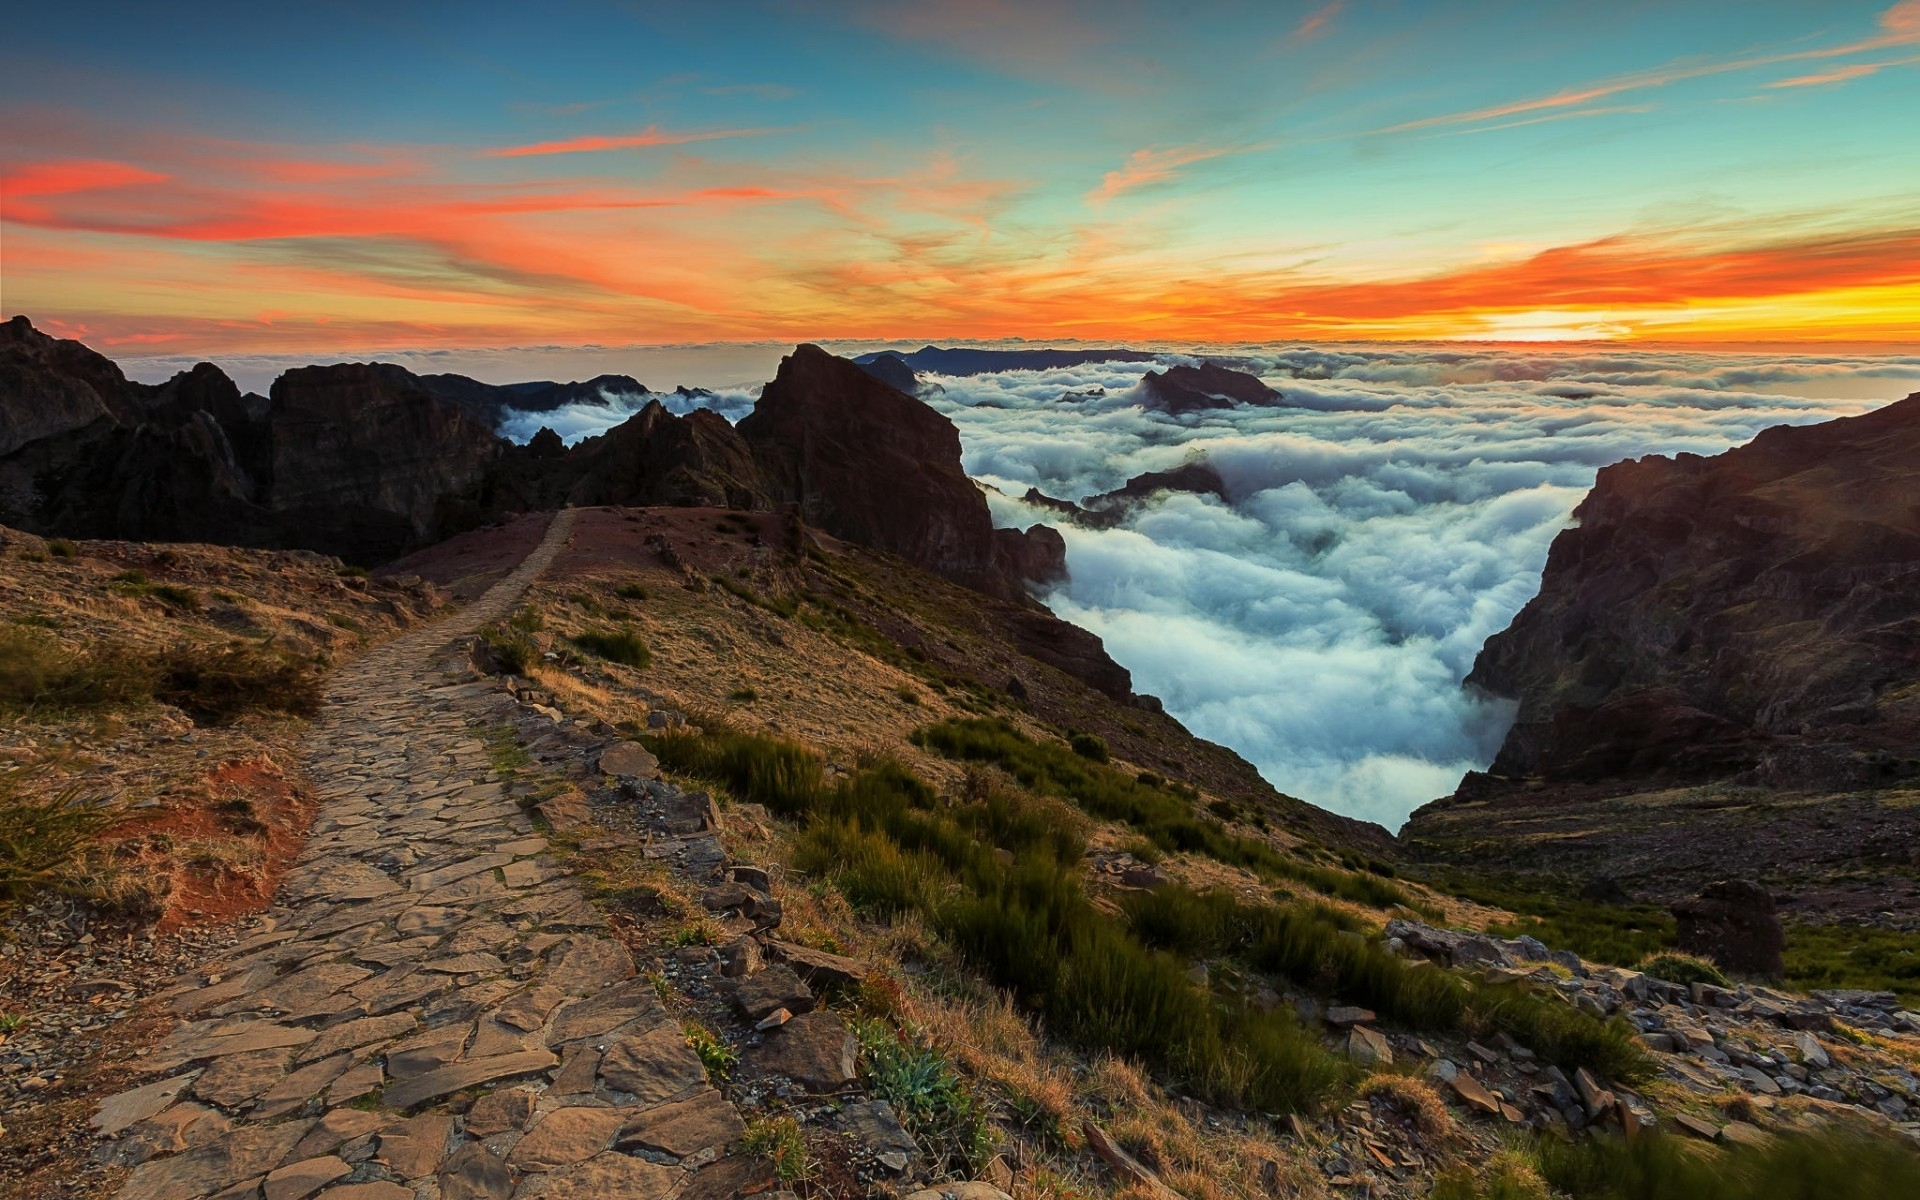 Animated Sunset Wallpaper Rocky Path Hills Clouds Sunset Wallpapers Rocky Path